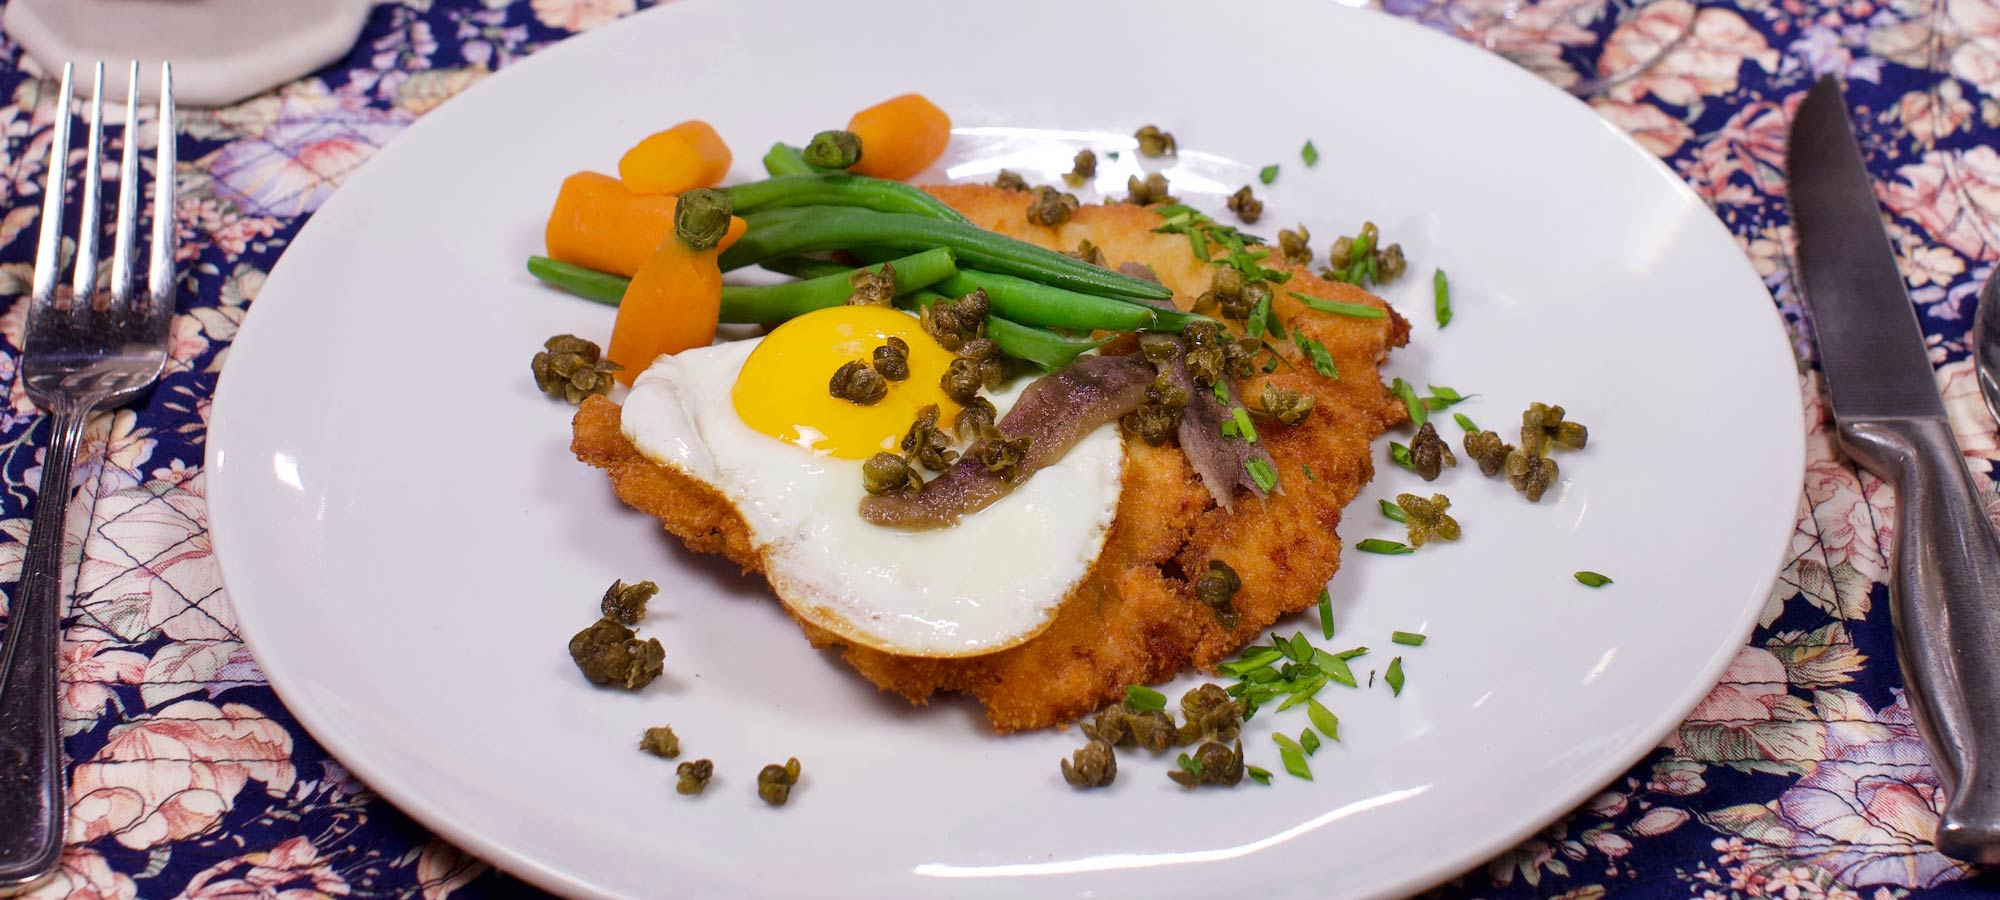 Veal Schnitzel at Countryman's Pleasure Restaurant in Rutland, VT